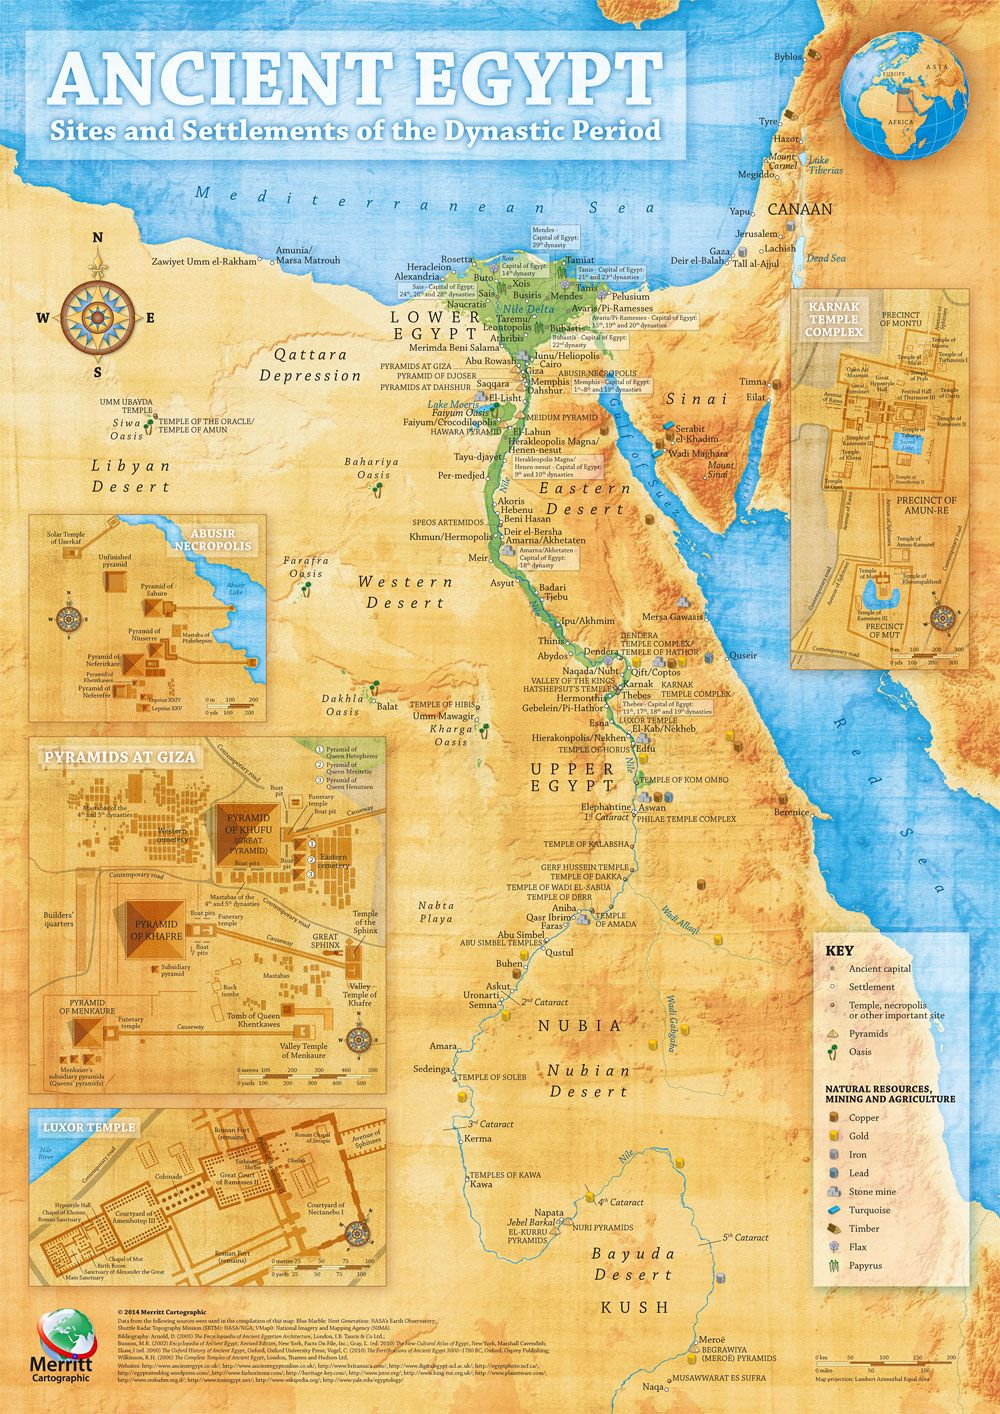 About egypt egypt known as the land of the pharaohs the home of ancient egypt map illustrative overview map highlighting the main sites and settlements of the ancient egyptian civilisation gumiabroncs Images